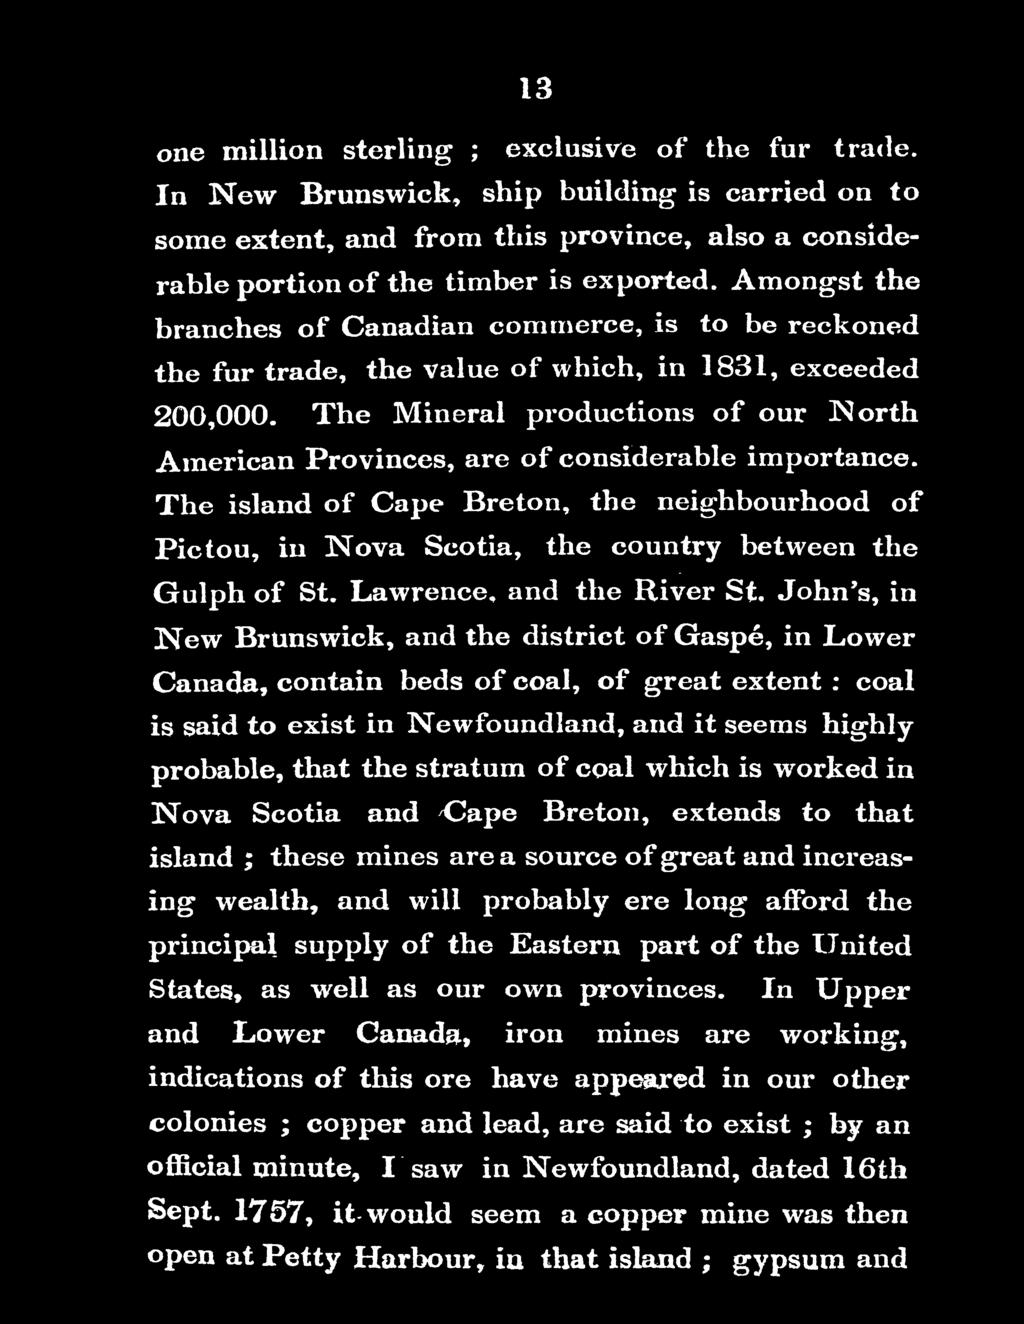 John's, in New Brunswick, and the district of Gaspe, in Lower Canada, contain beds of coal, of great extent : coal is said to exist in Newfoundland, artd it seems highly probable, that the stratum of